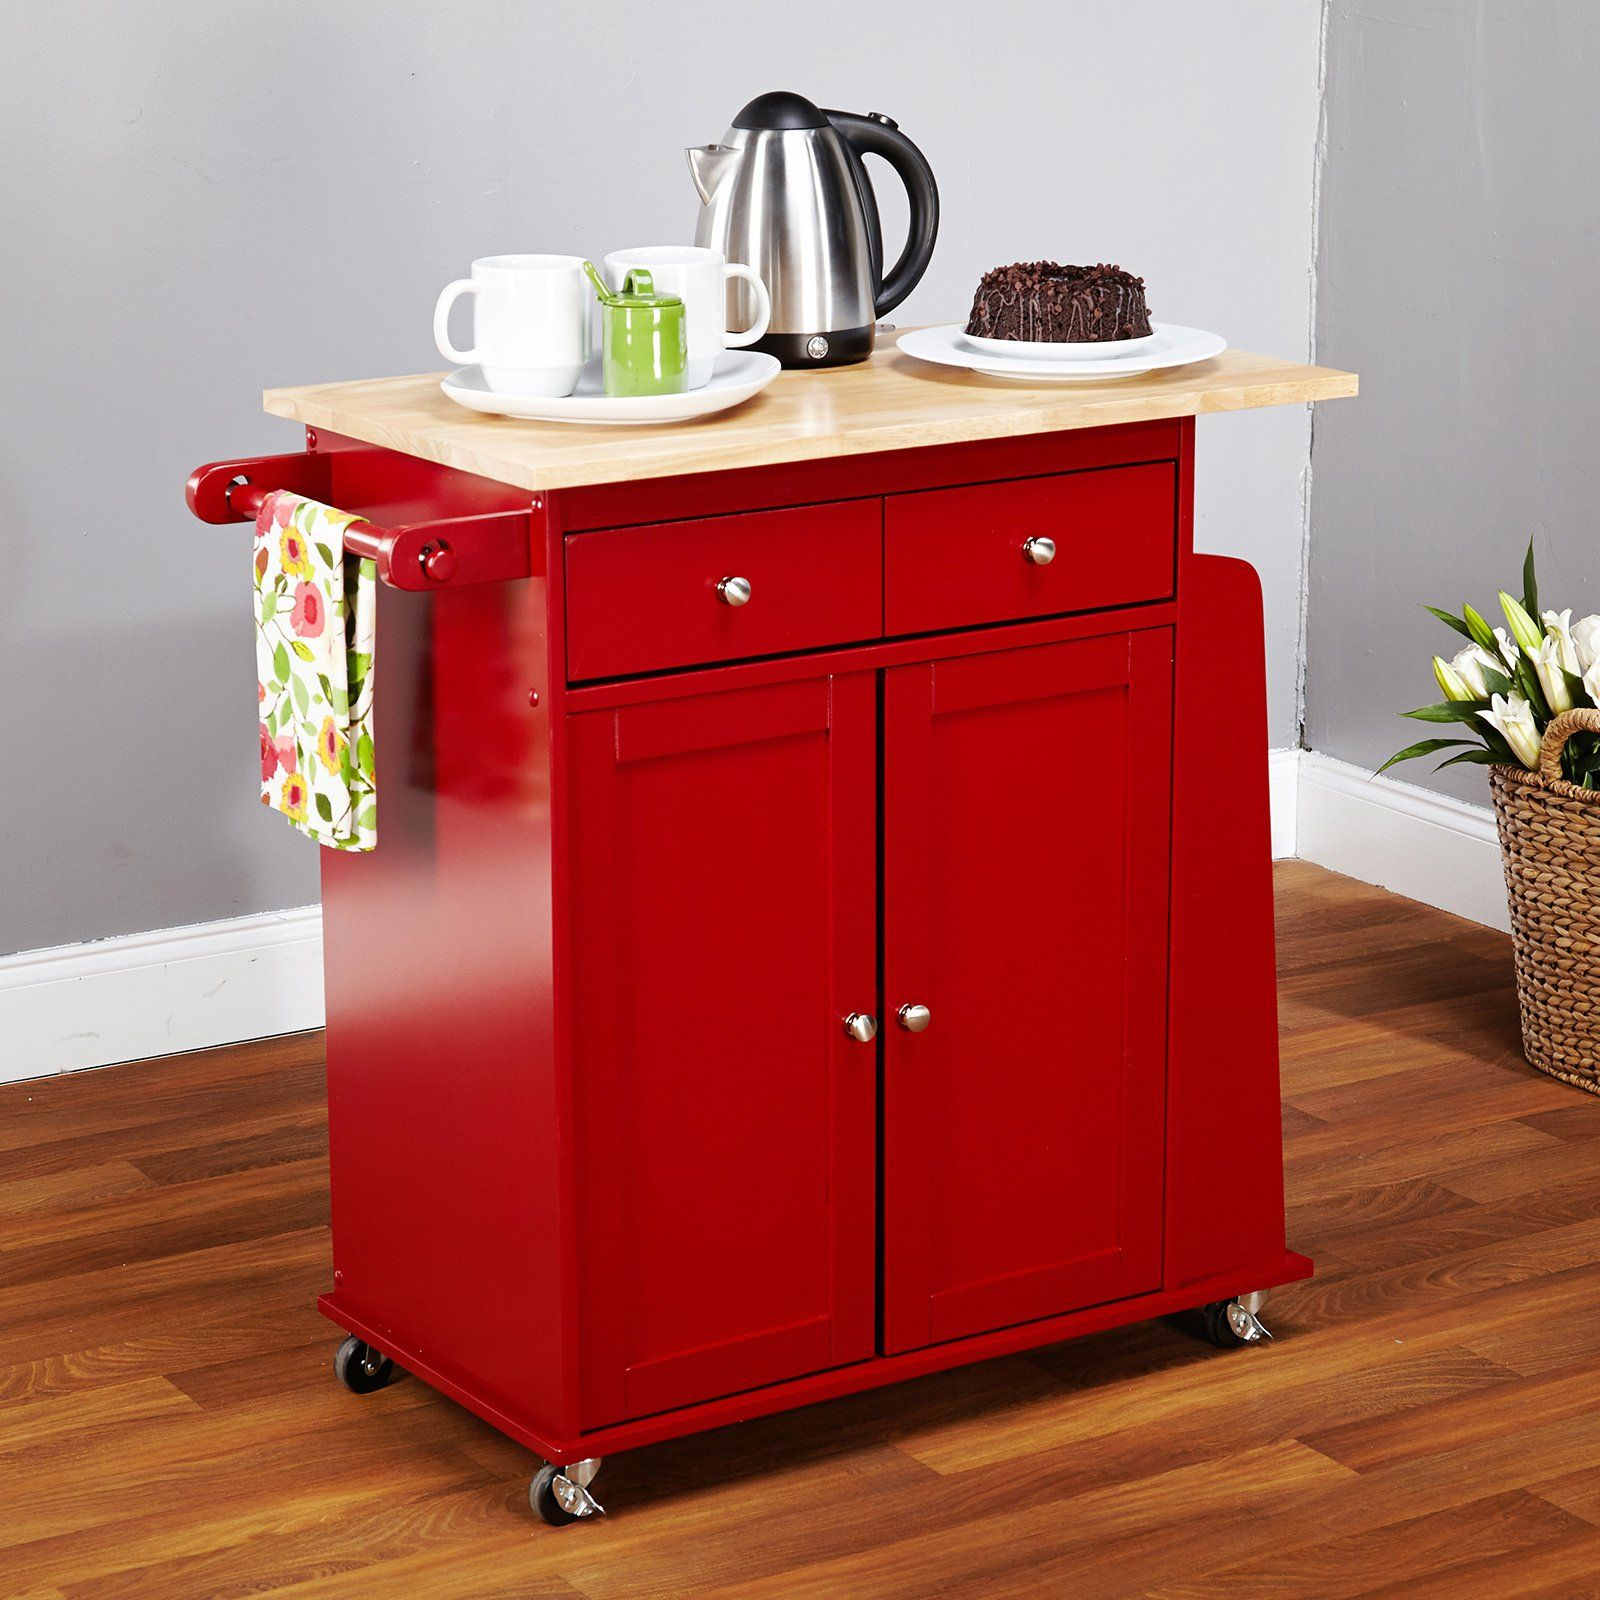 Target marketing systems sonoma kitchen cart smart storage and locking casters make the target market sonoma kitchen cart an essential part of your